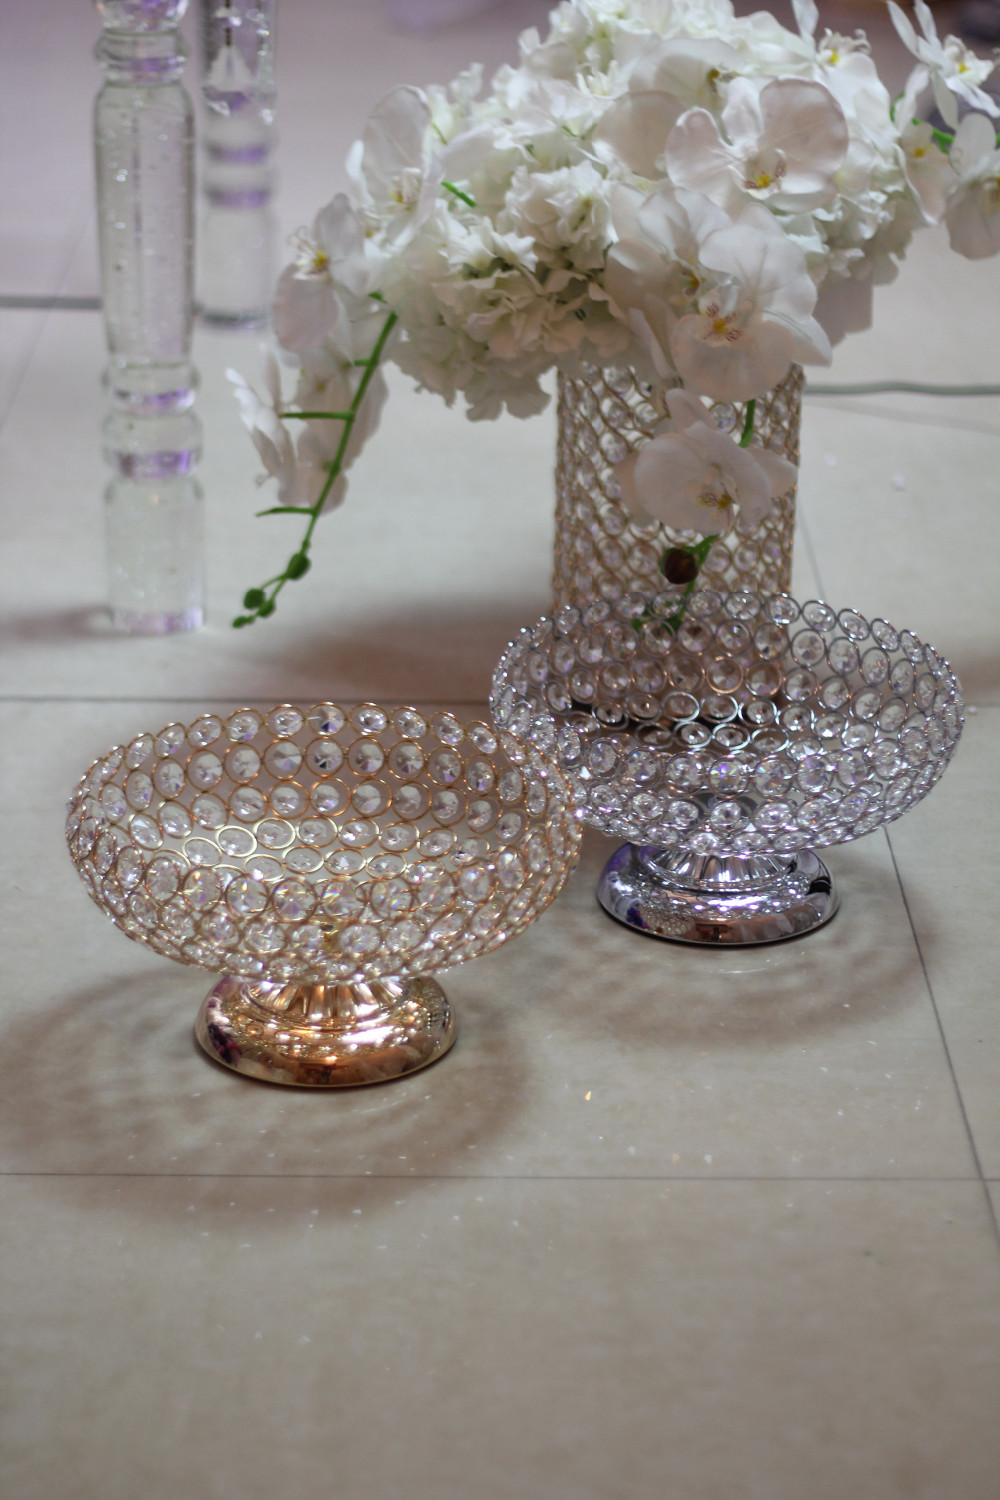 Nice Crystal Bead Fruit Tray Plate Bowl Stand Dimeter 9.84inch  wedding centerpieces